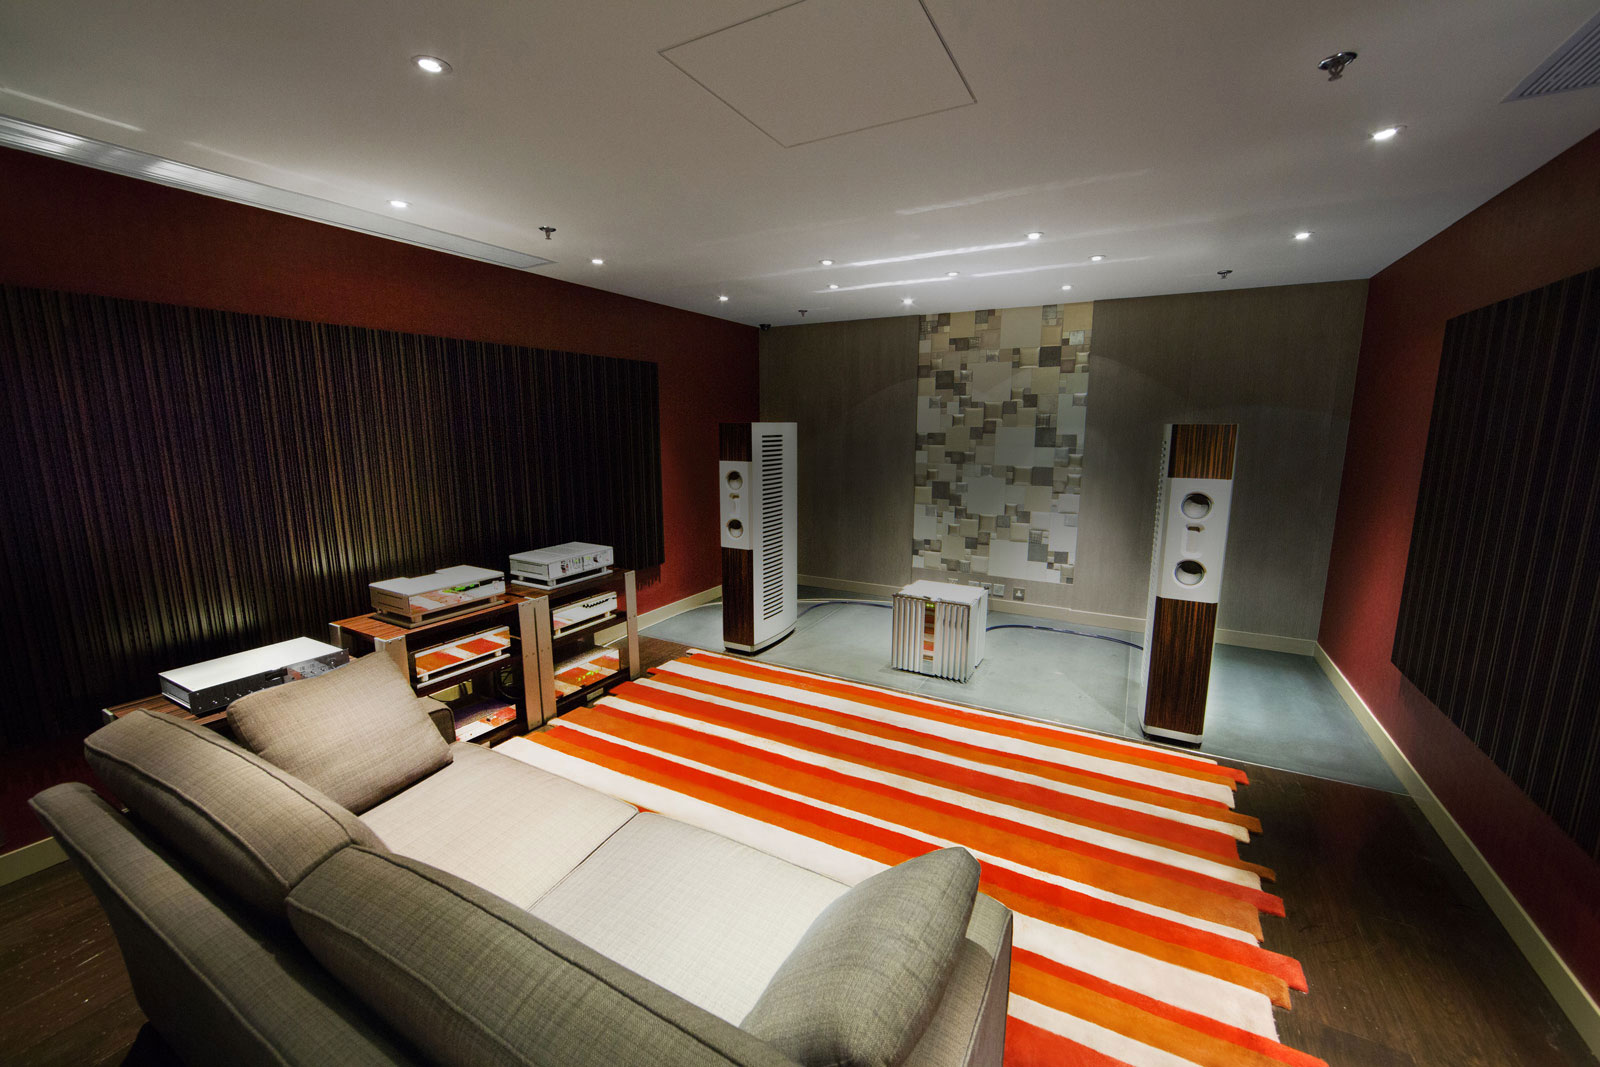 Each of our demo rooms is designed a little differently, and when it comes to serious two-channel listening, most audiophiles would pay a little more attention to sonic details on top of prepossessing decors.